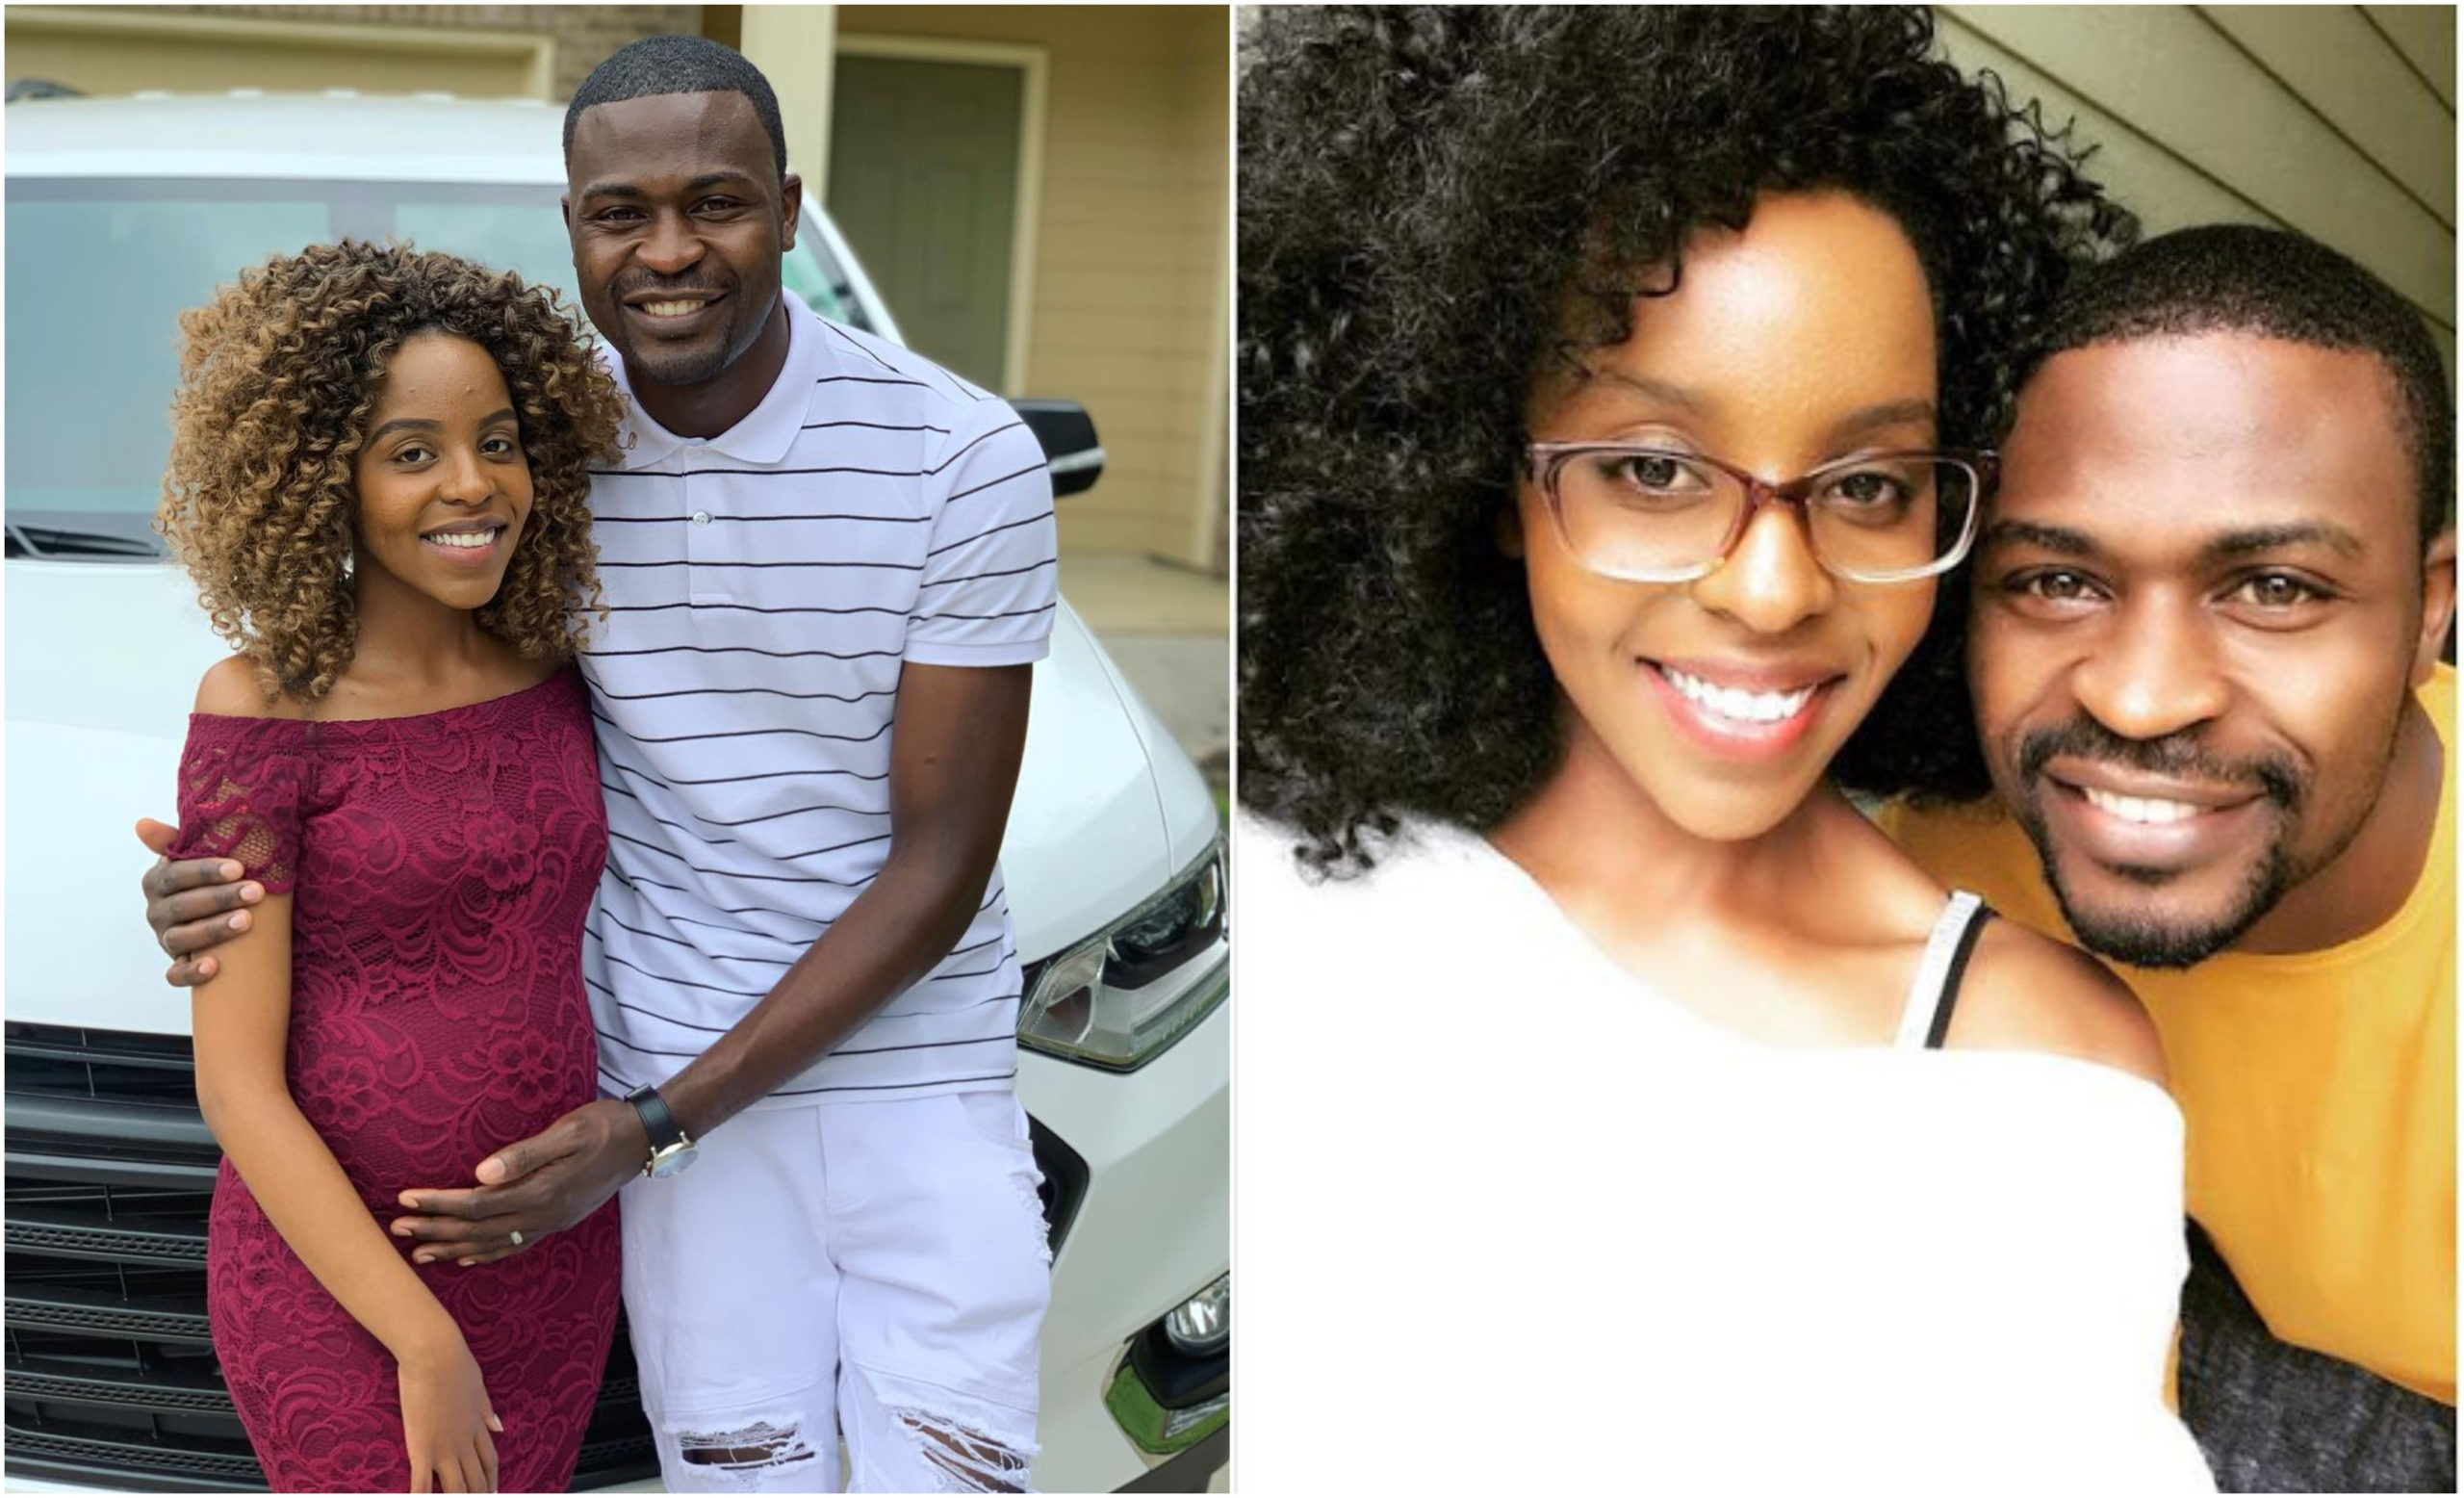 Baby on board! Singer Benachi and wife expecting baby number 2 (Video)